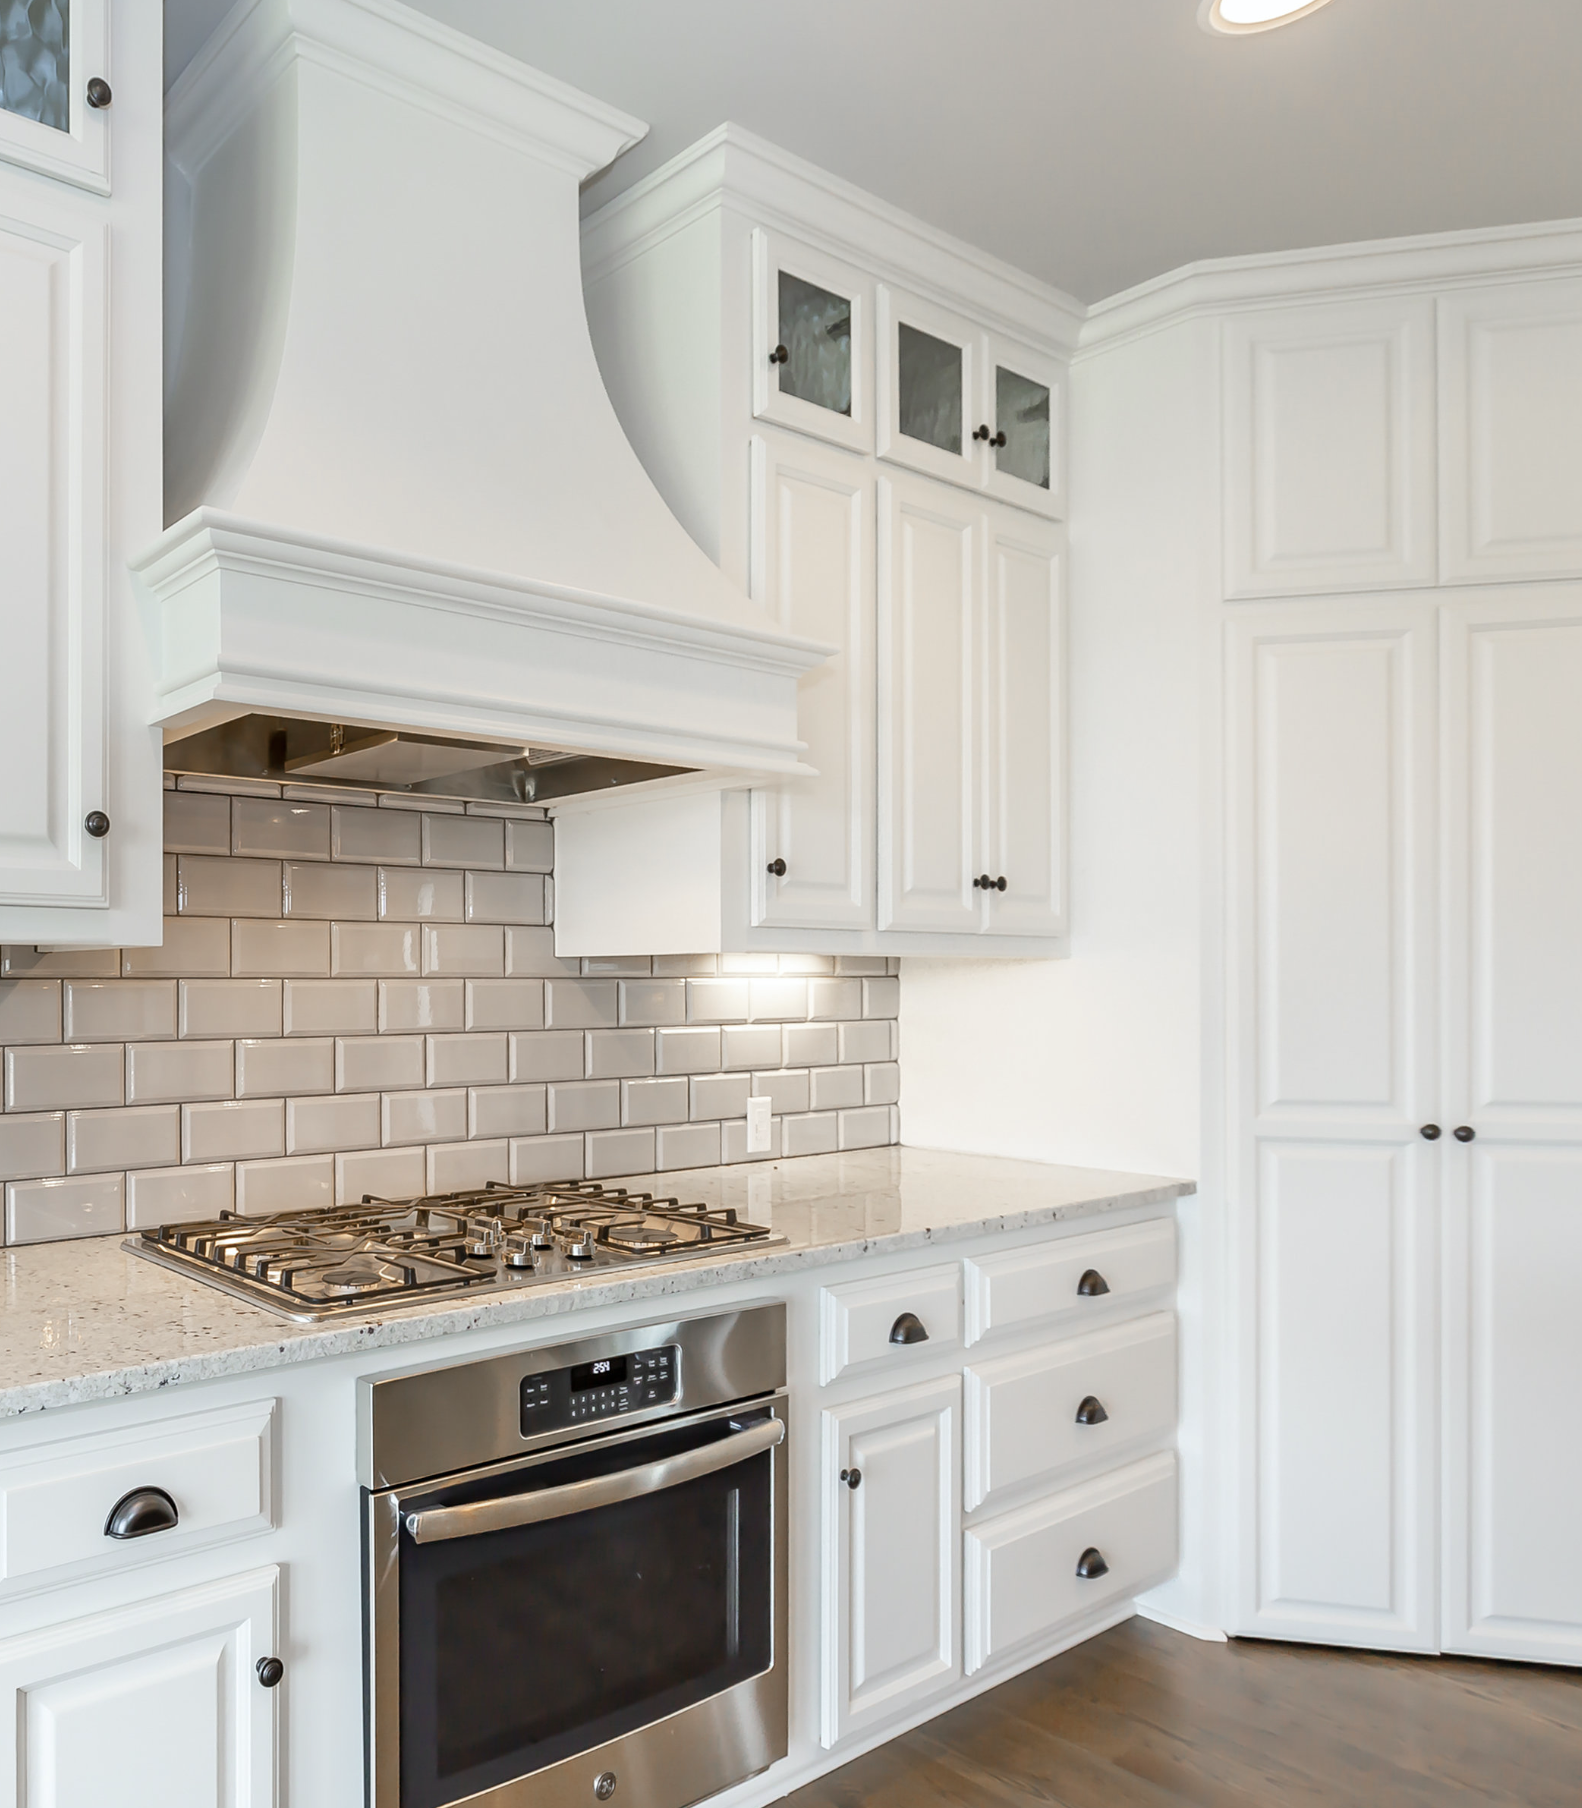 Our Juniper Floor Plan Is A Reverse 1 1 2 Story With The Master Bedroom On The Main Floor With Access T Trendy Kitchen Backsplash Floor Plans Floor Plan Design